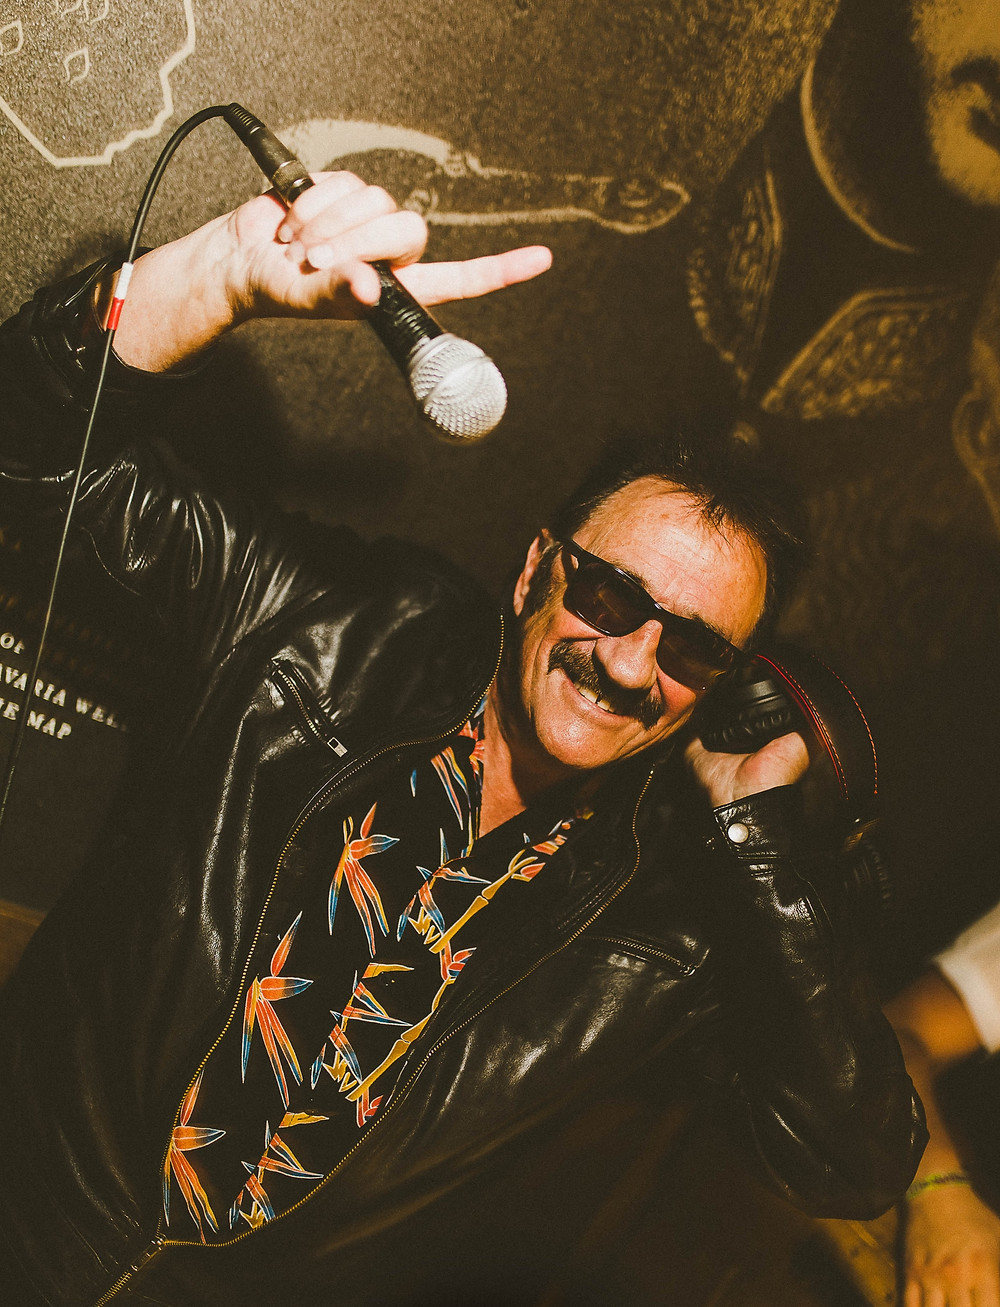 Paul Chuckle To Headline Bongo's Bingo 'Freedom Day' Special Event (Credit: Qtalent/Image Supplied by Publicist).